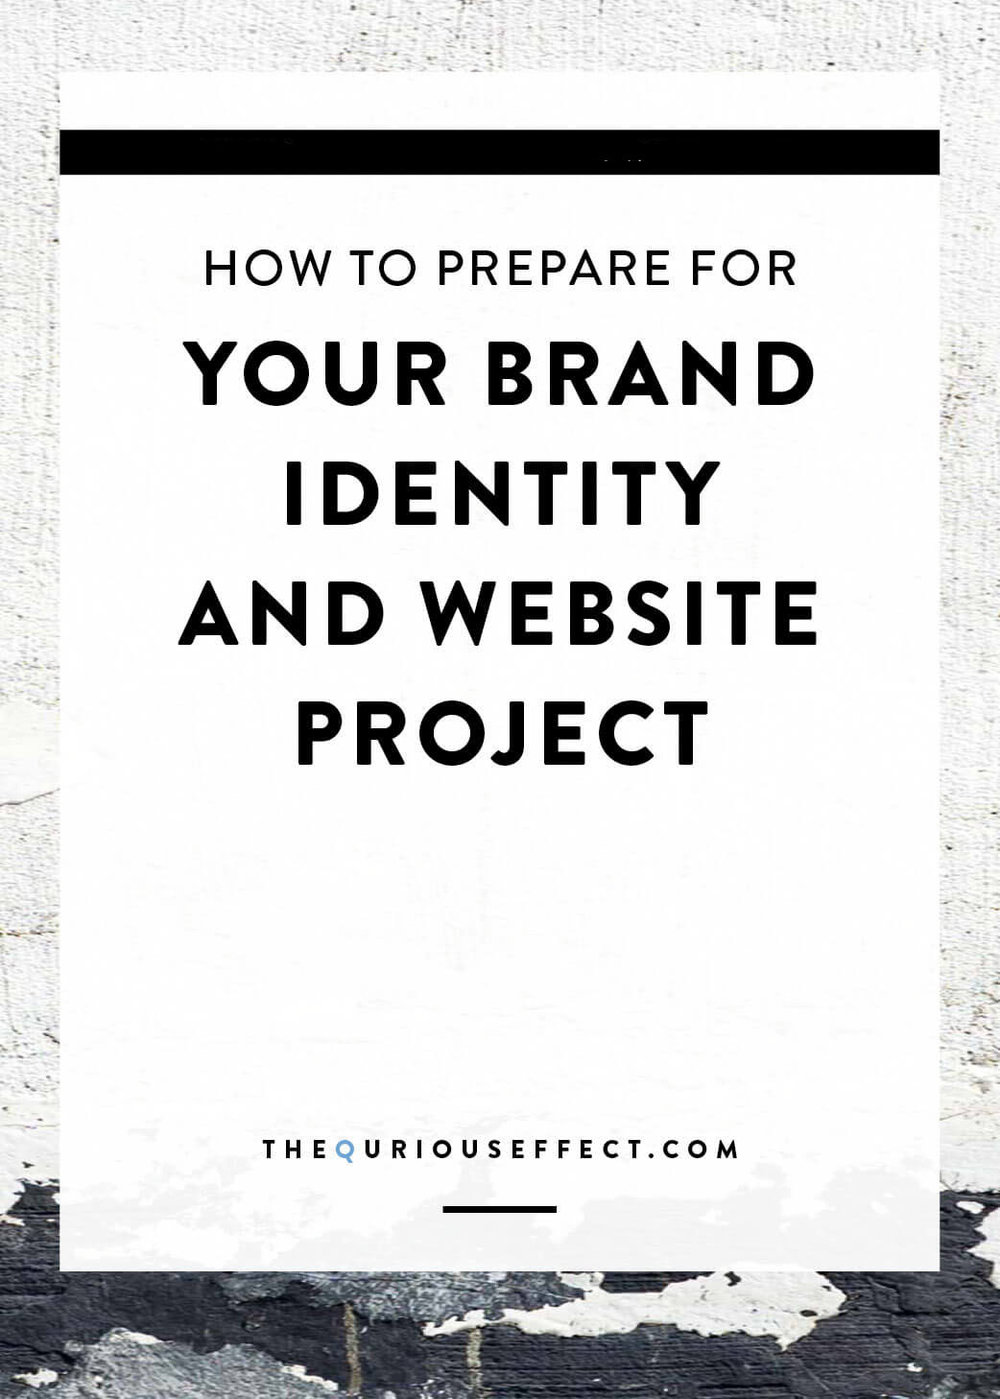 How to prepare for your brand identity and Squarepace website projects by The Qurious Effect.